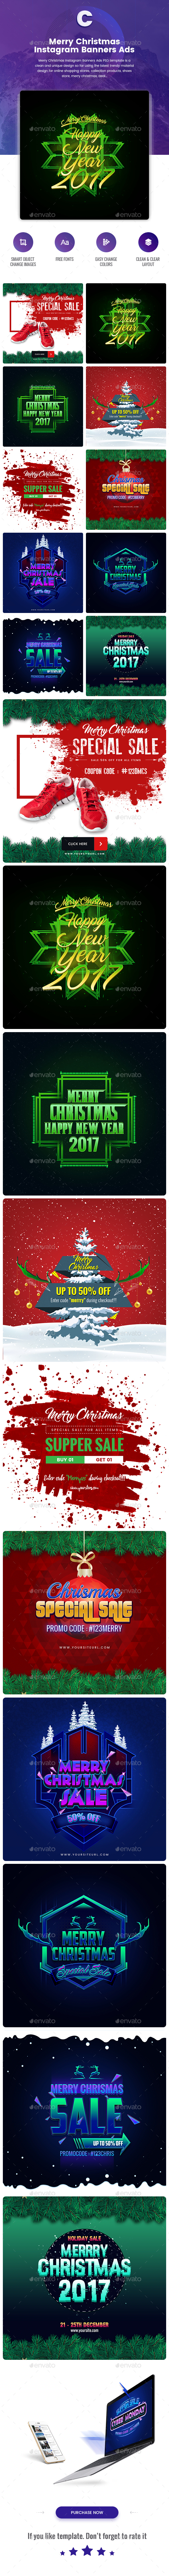 Merry Christmas Instagram Banners Ads - 10 PSD - Social Media Web Elements